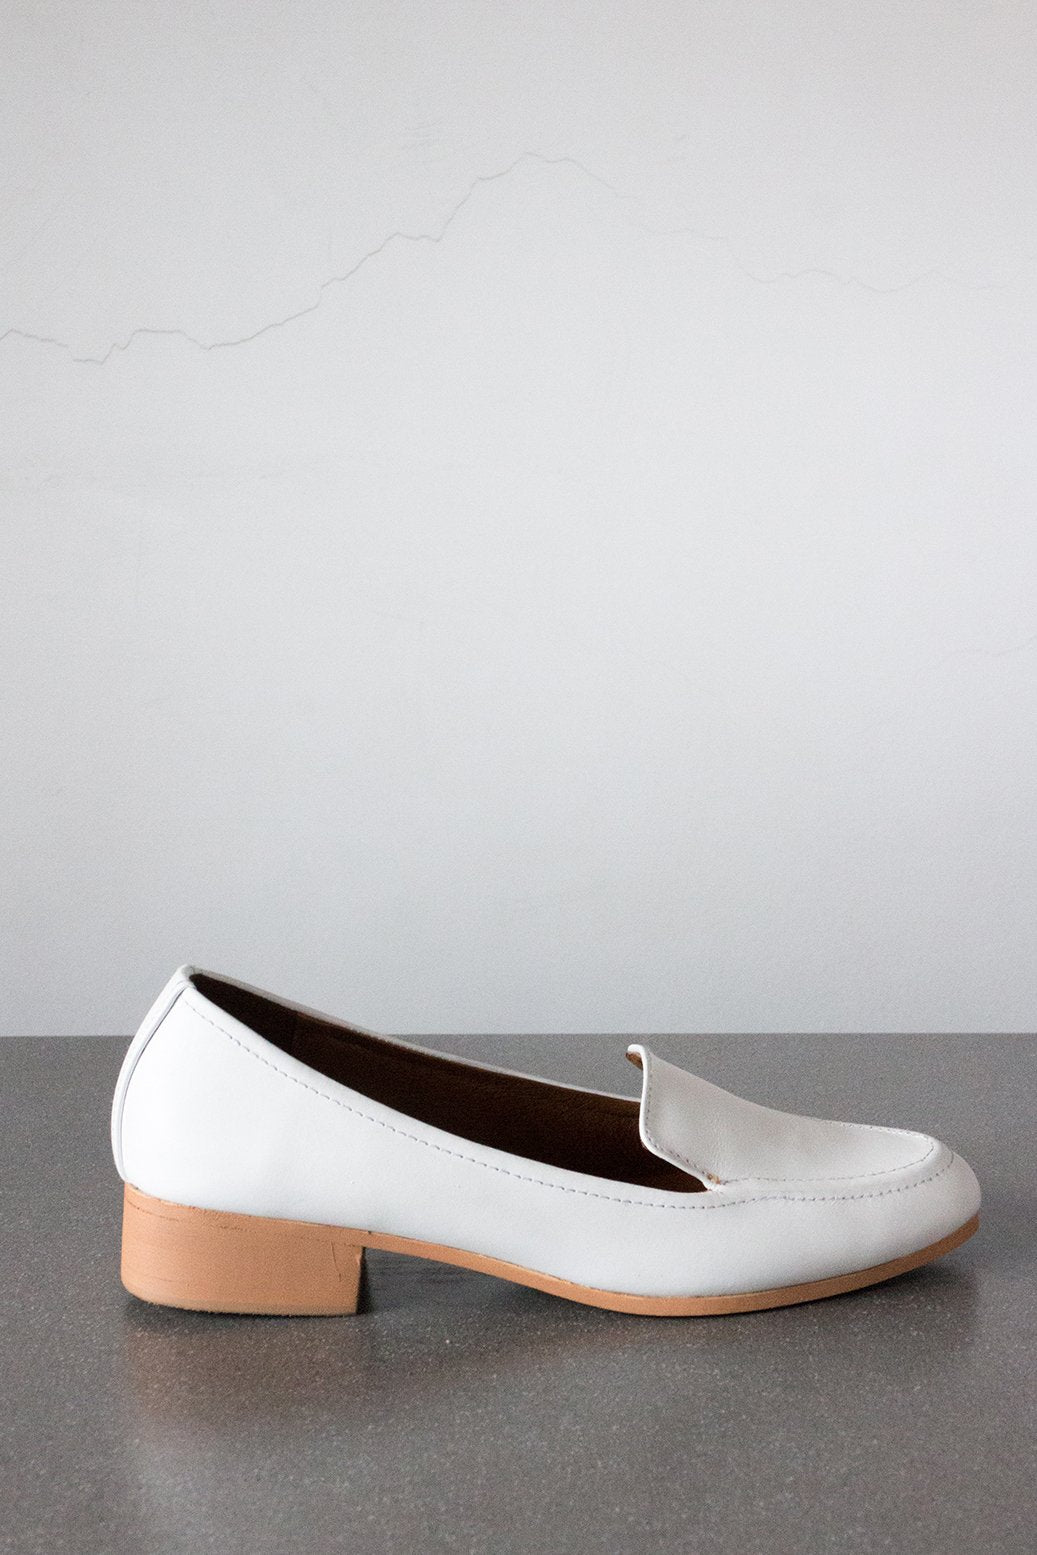 Modern Loafer in White (size 5)